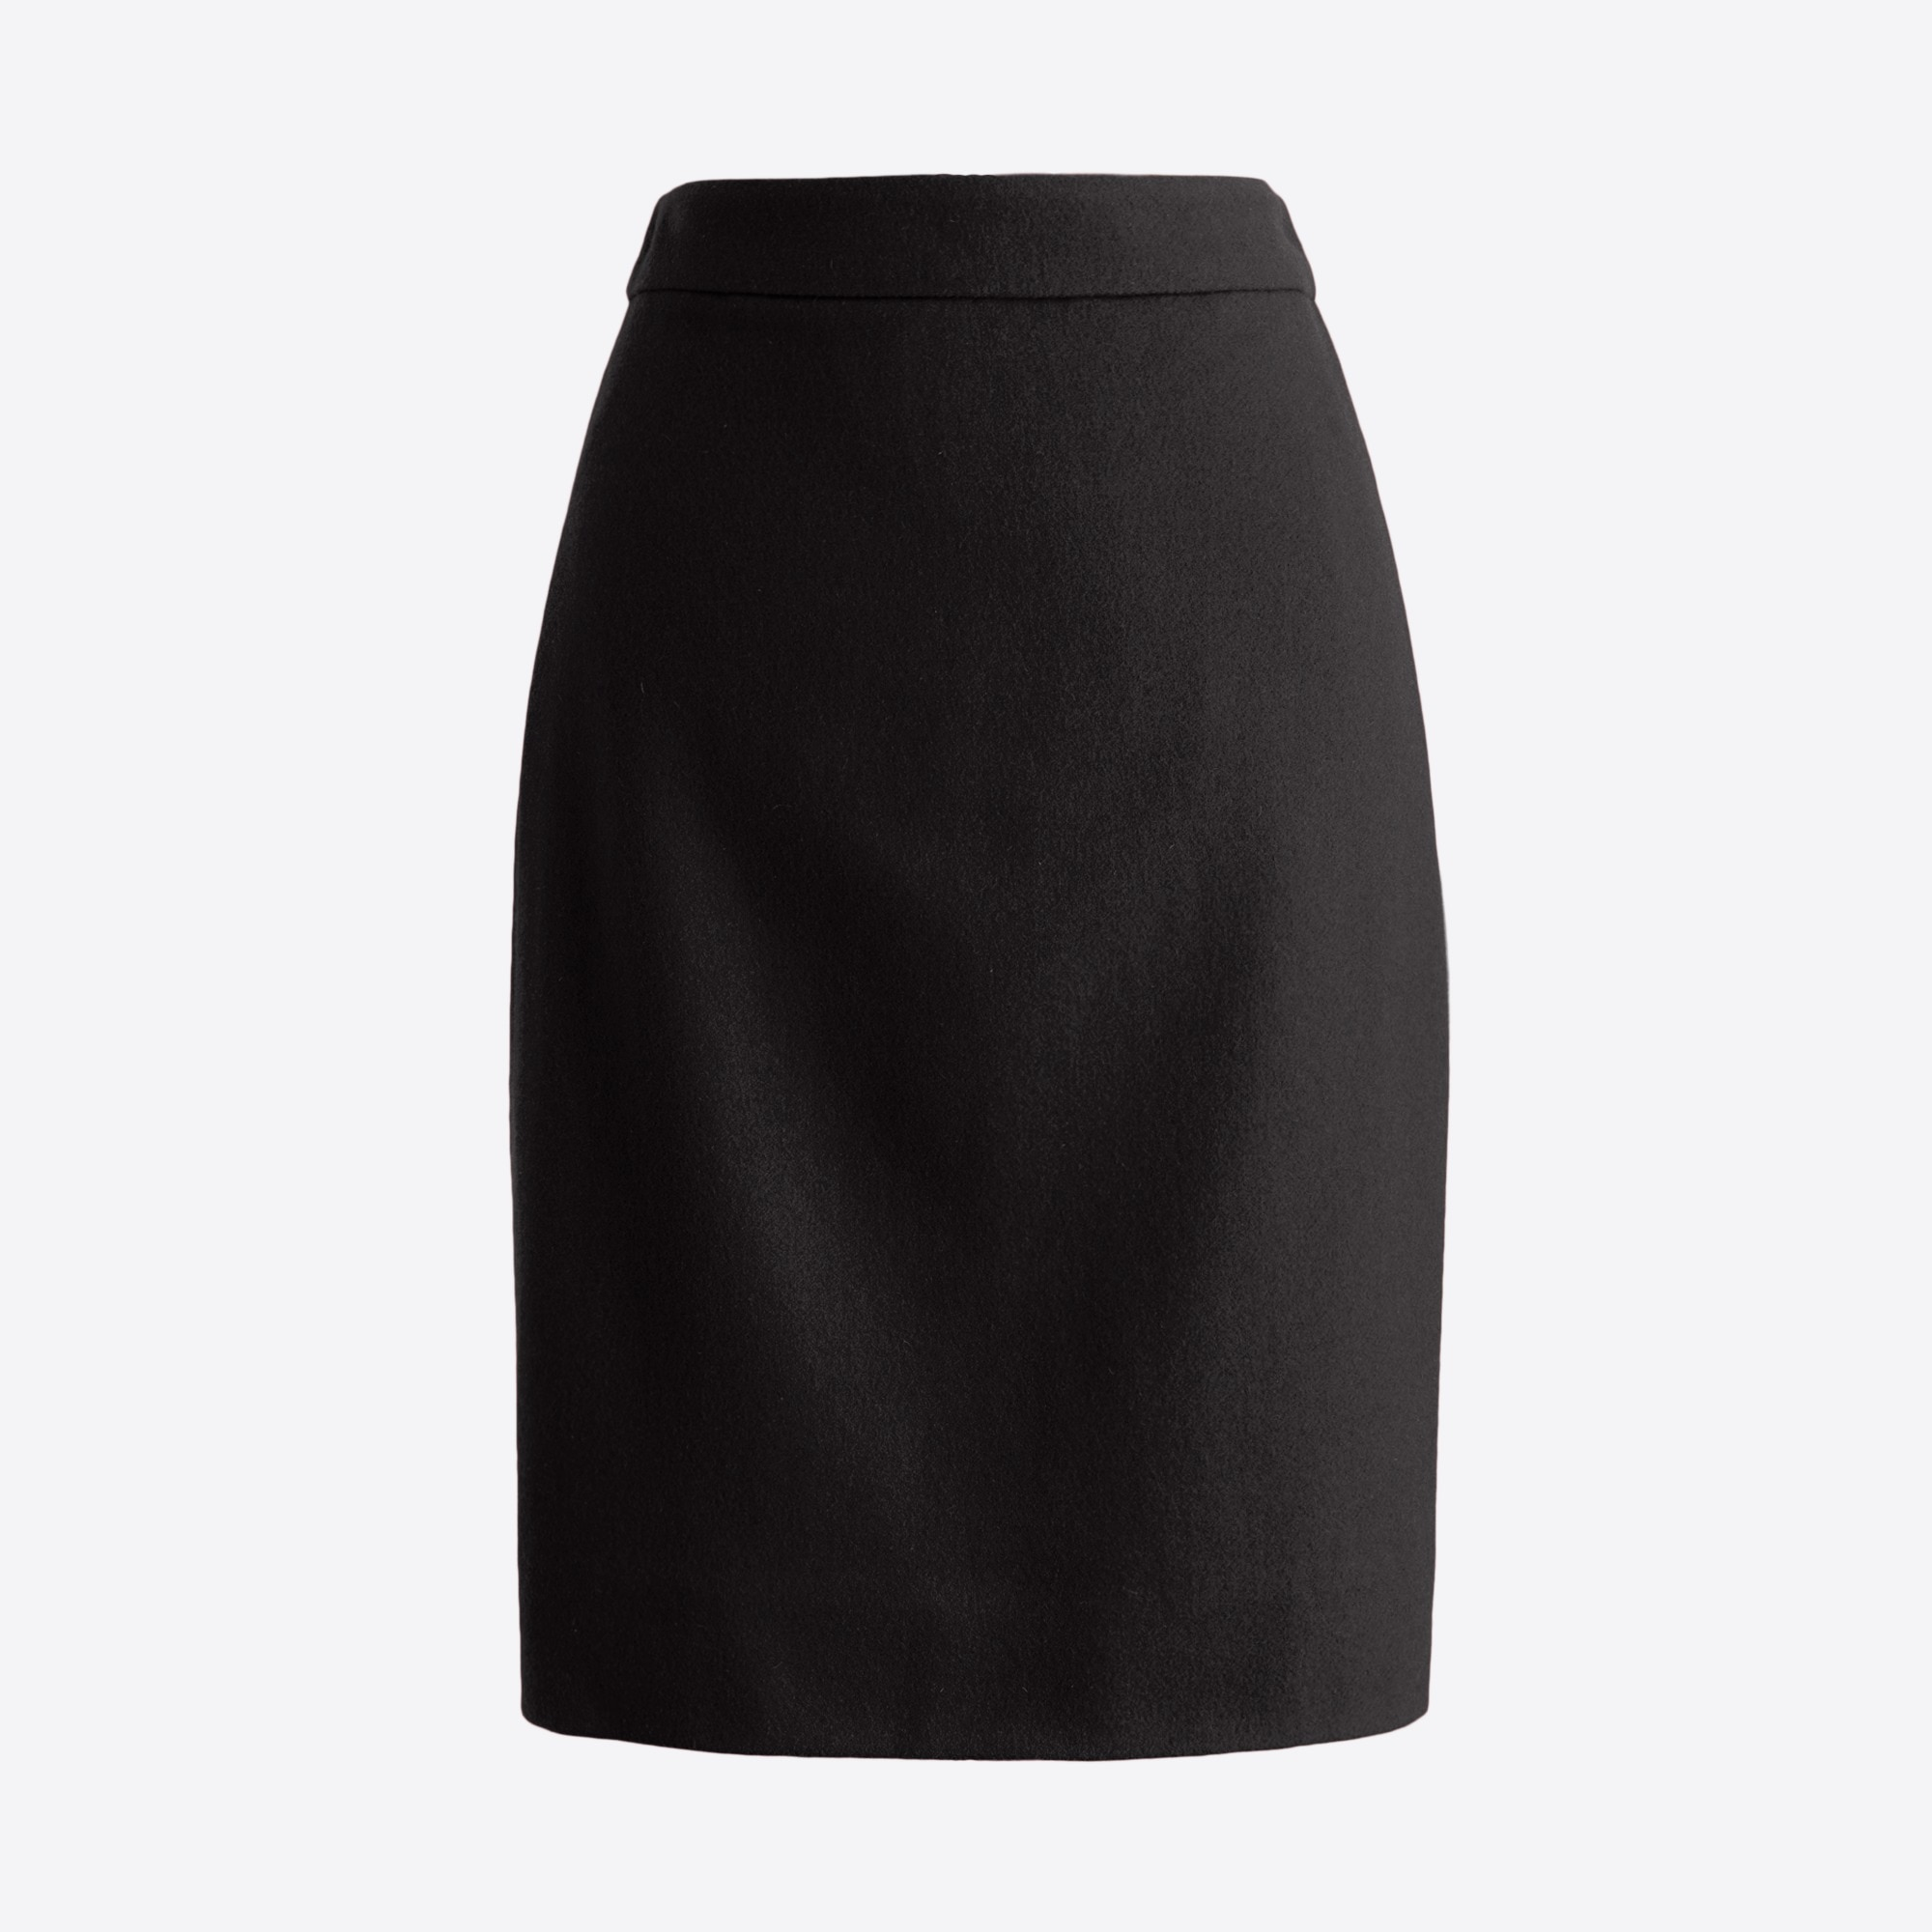 Image 2 for Pencil skirt in double-serge wool